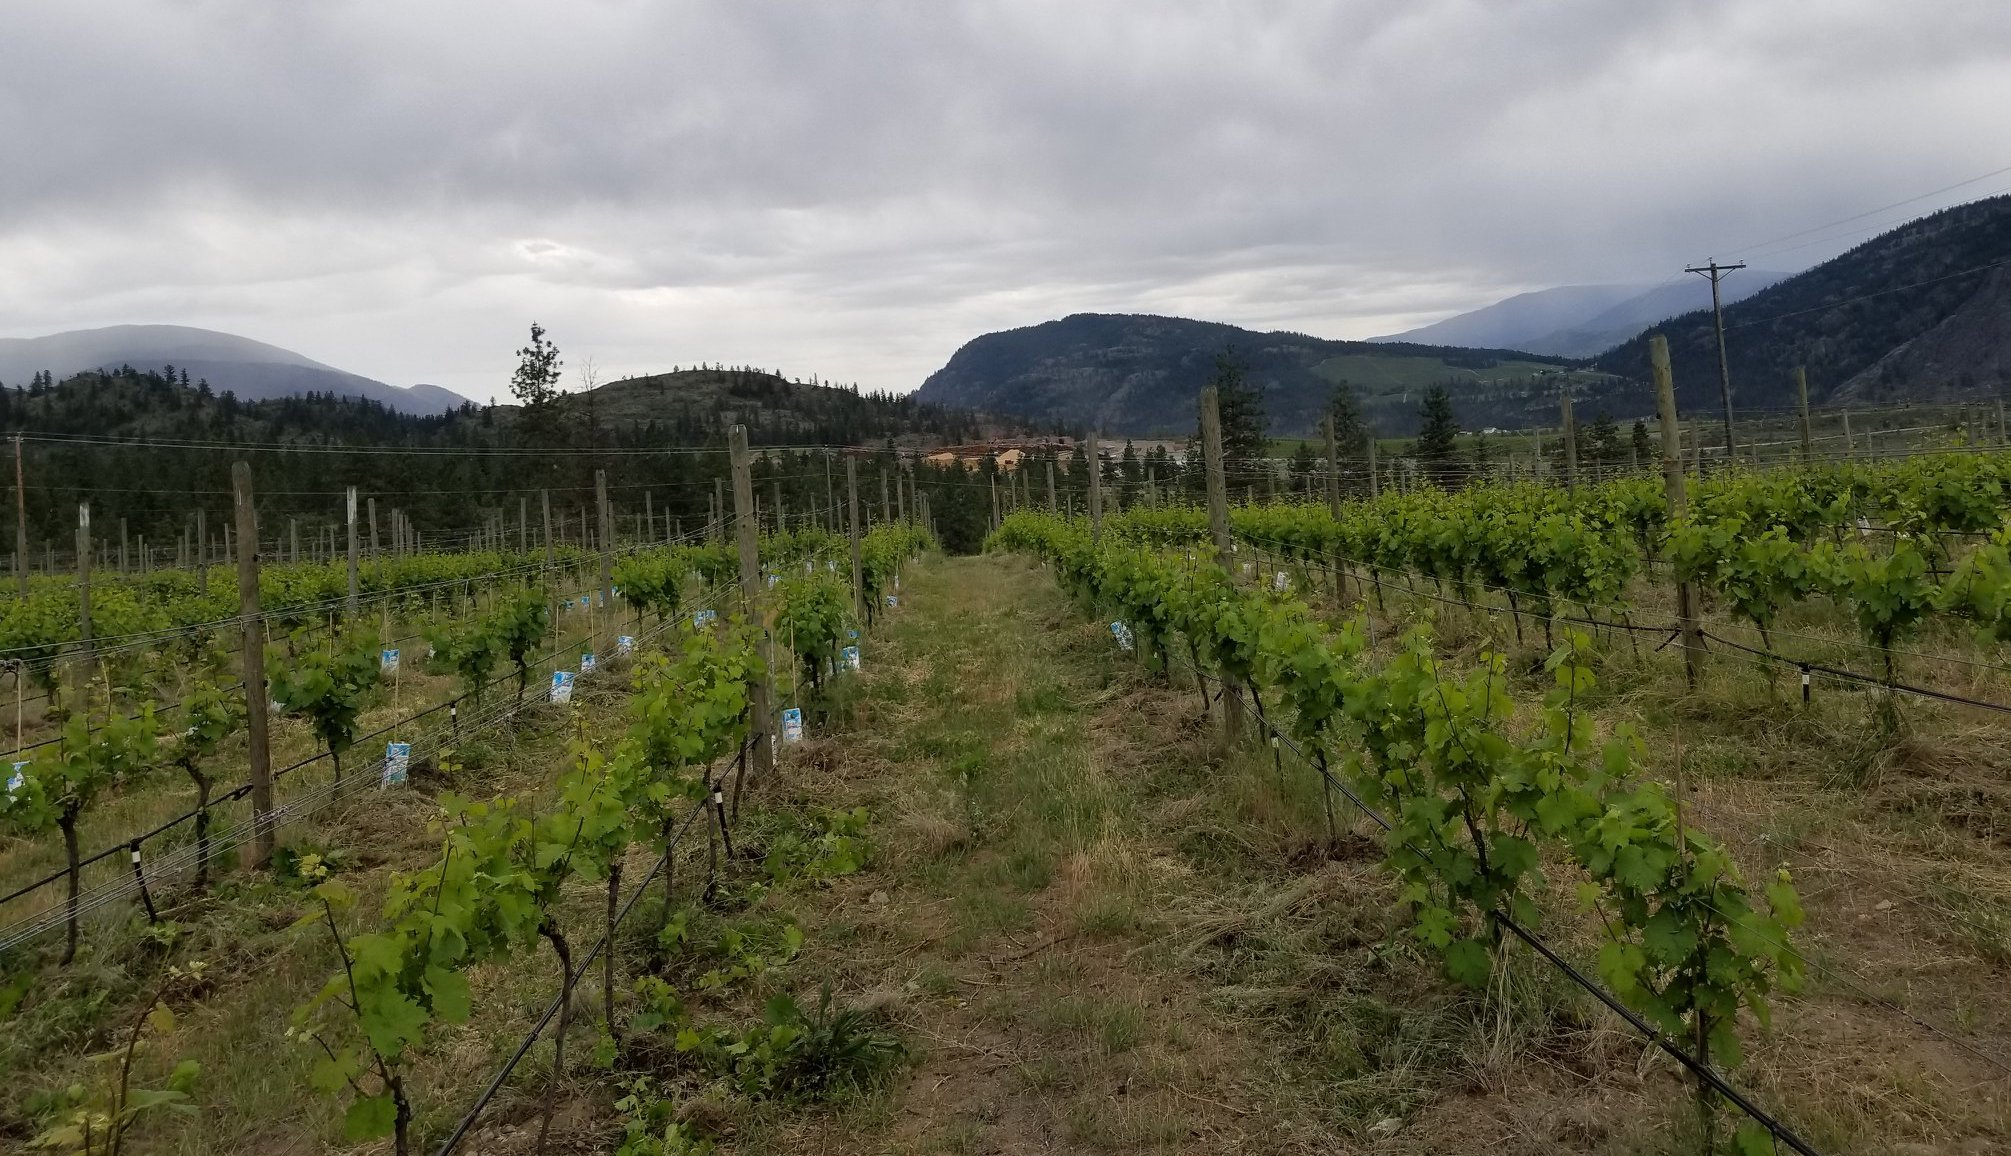 The Anticipated 2018 Synchromesh Riesling(s) Release